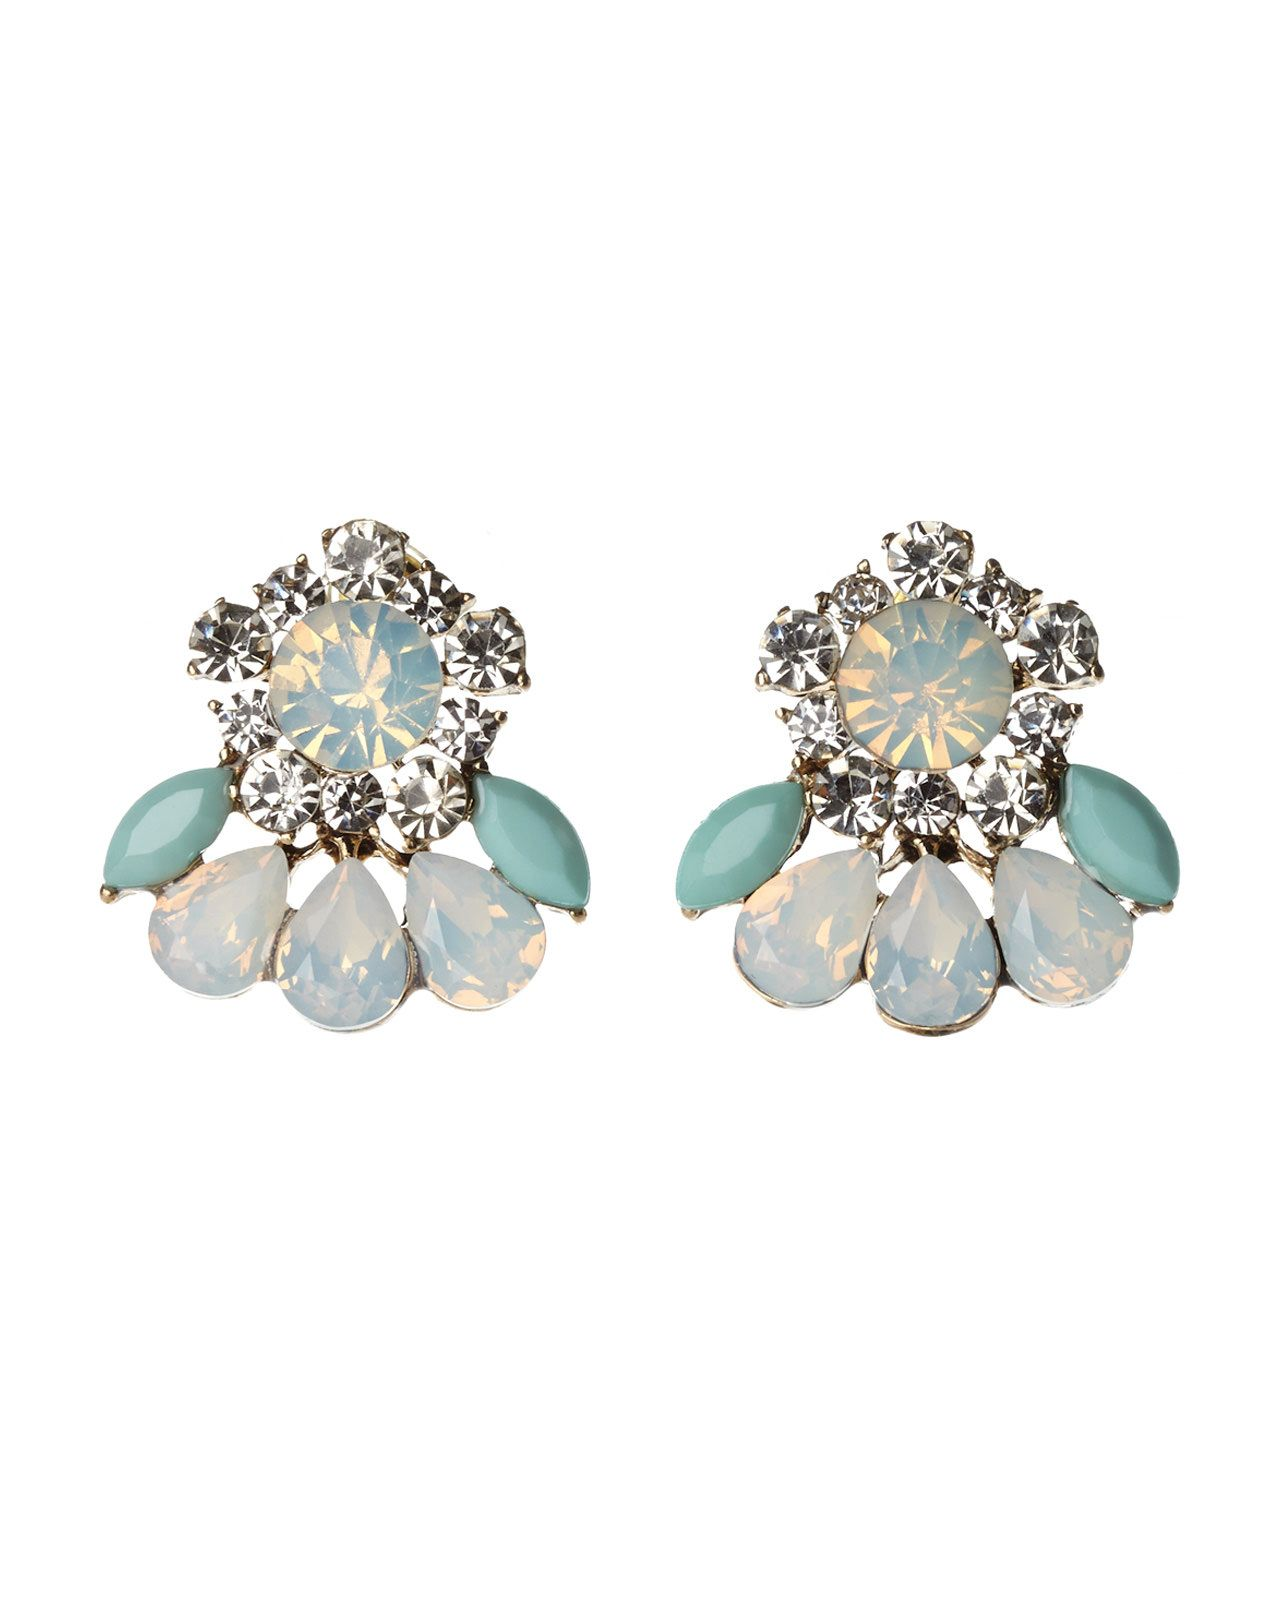 The finishing touch to your day to night. #OOTD #earrings #allthatglitters